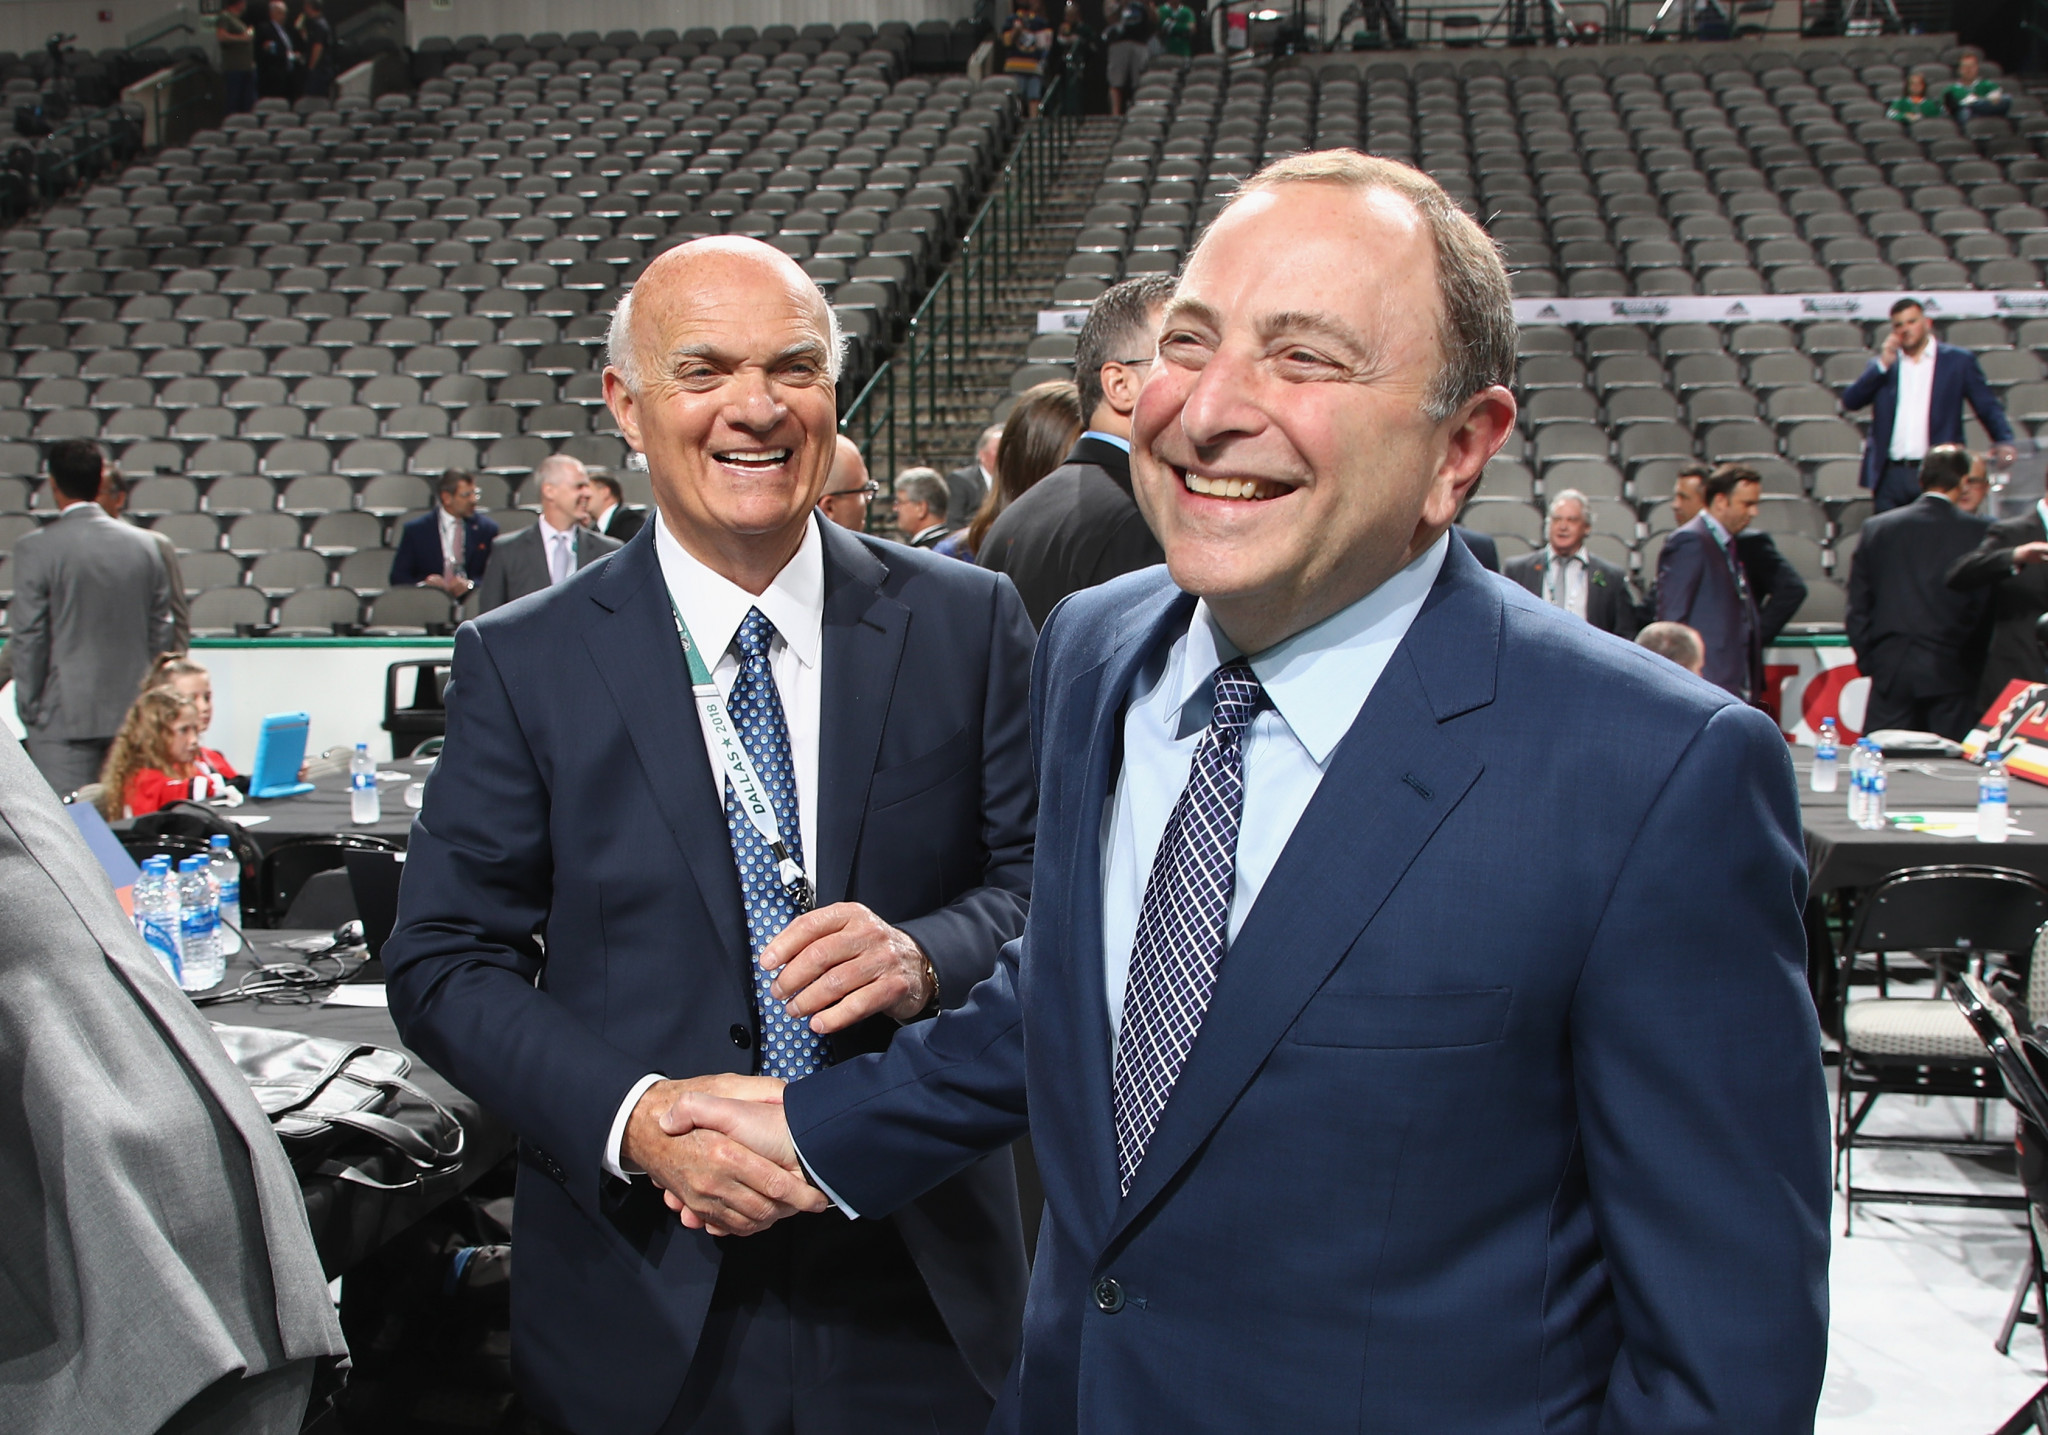 NHL Commissioner Gary Bettman, right, has claimed ice hockey's growth in China is not be dependent on the League participating at the 2022 Winter Olympic Games in Beijing ©Getty Images